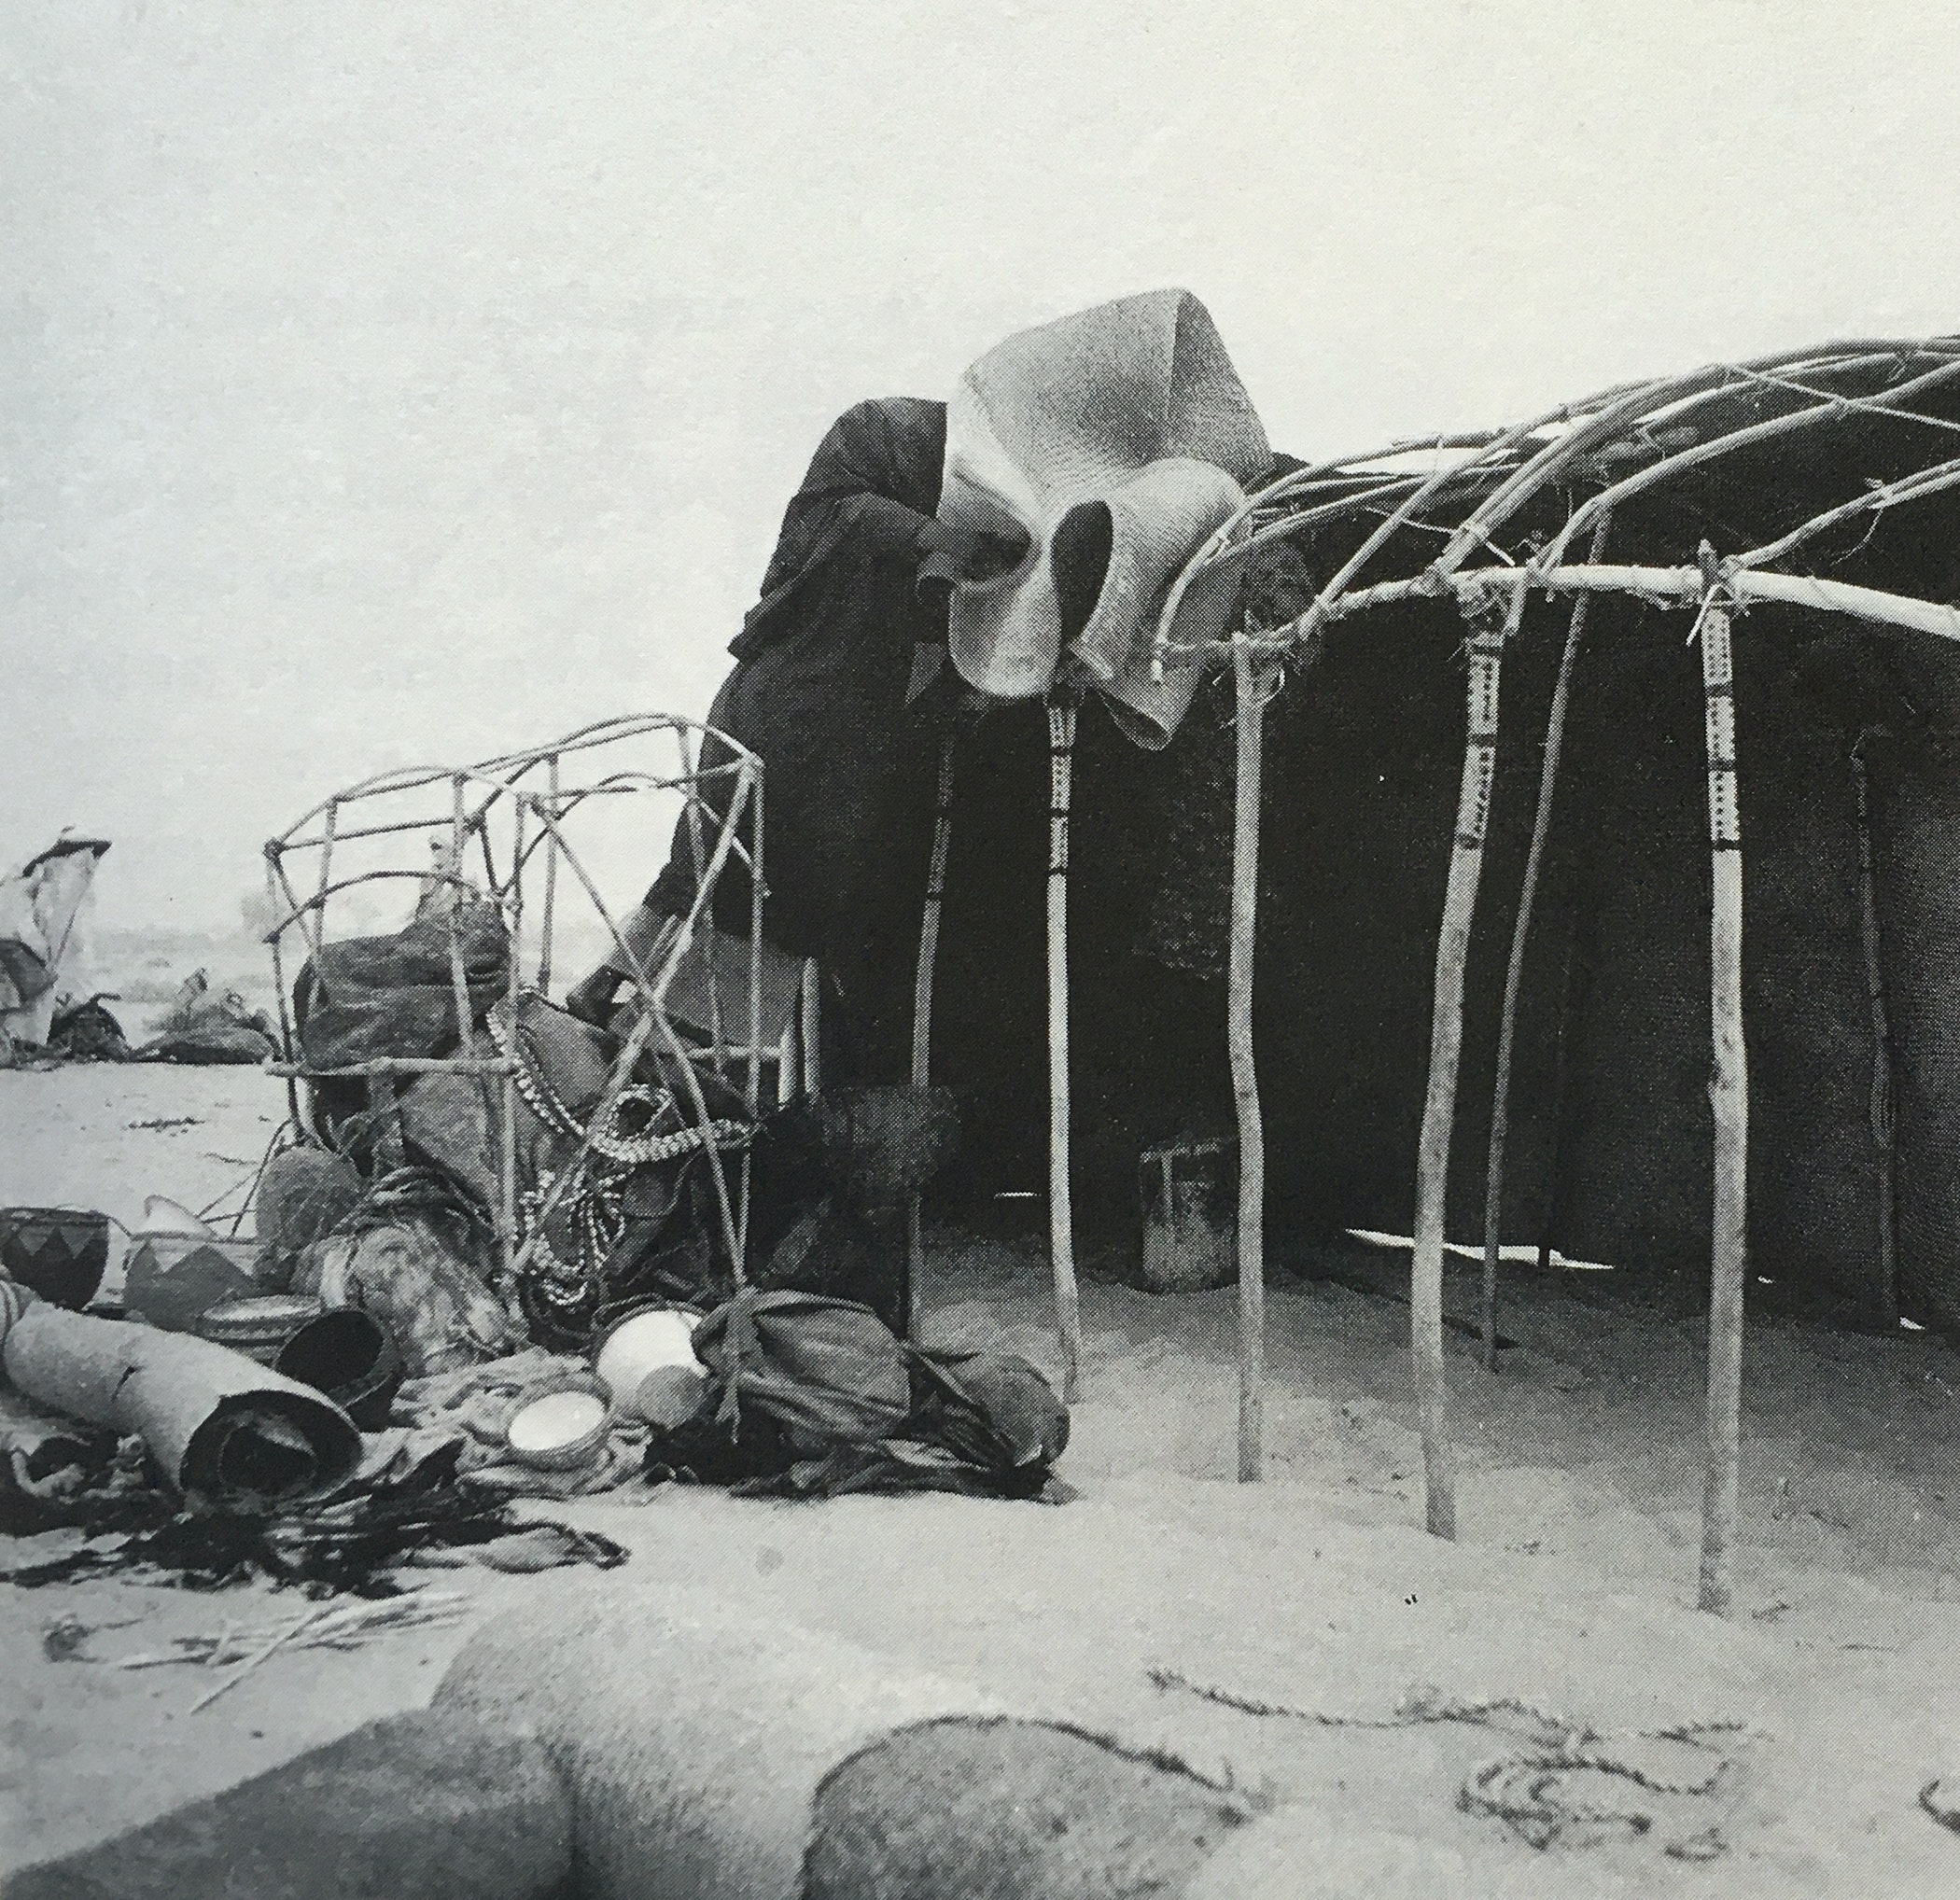 A Tubu woman constructing her tent in the northern Ennedi region of Chad